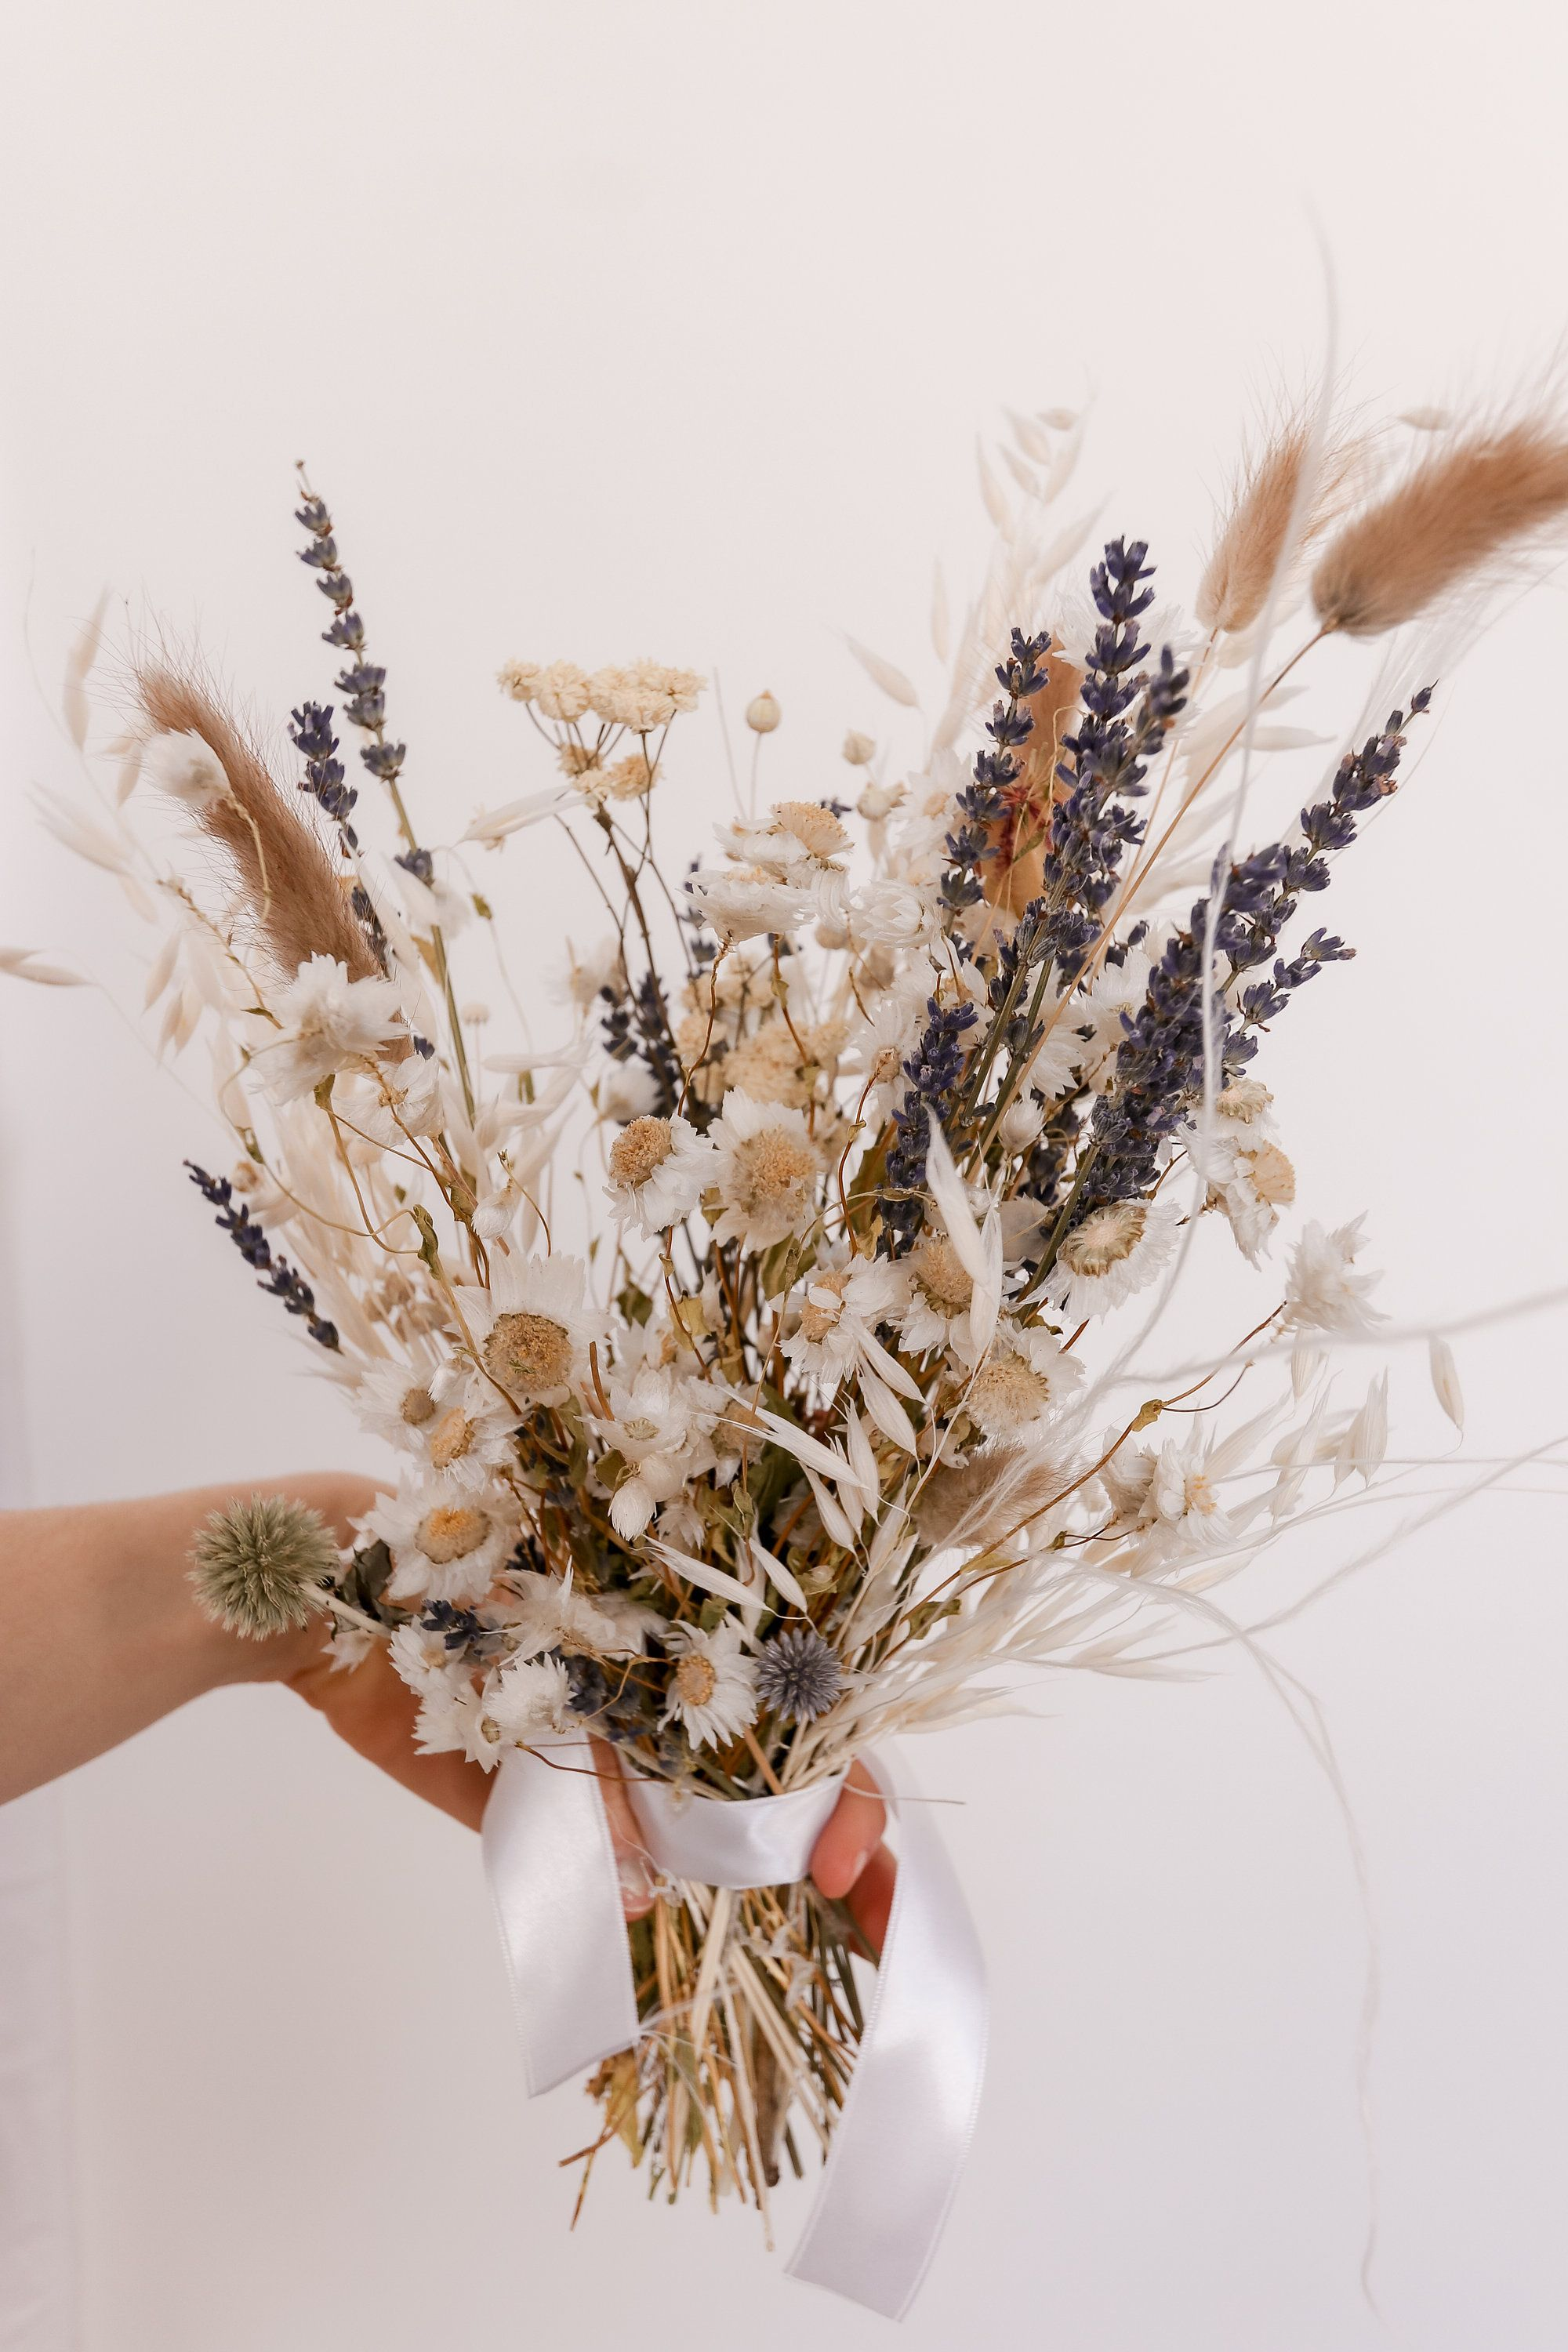 Dried Lavender Bouquet Dried Daisy Bouquet Echinops Etsy In 2020 Dried Flower Bouquet Wedding Dried Flower Bouquet Wildflower Bouquet